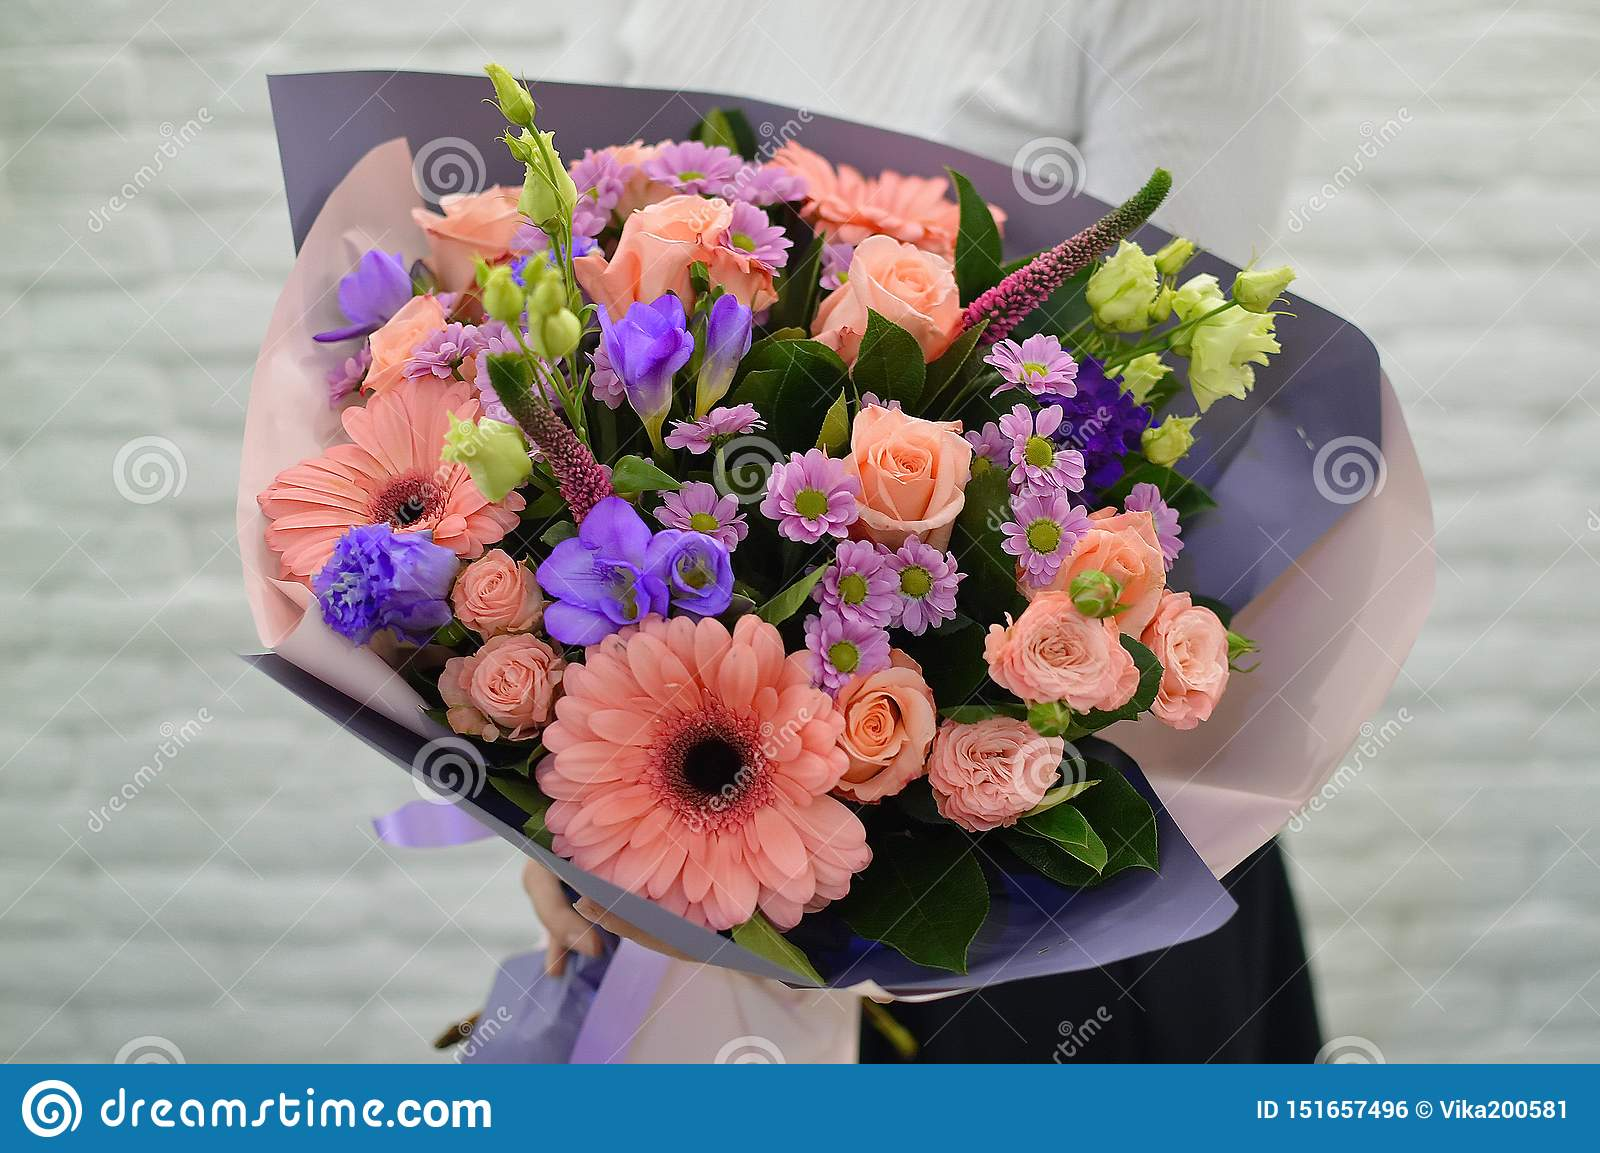 Stylish pink bouquet on a white background.